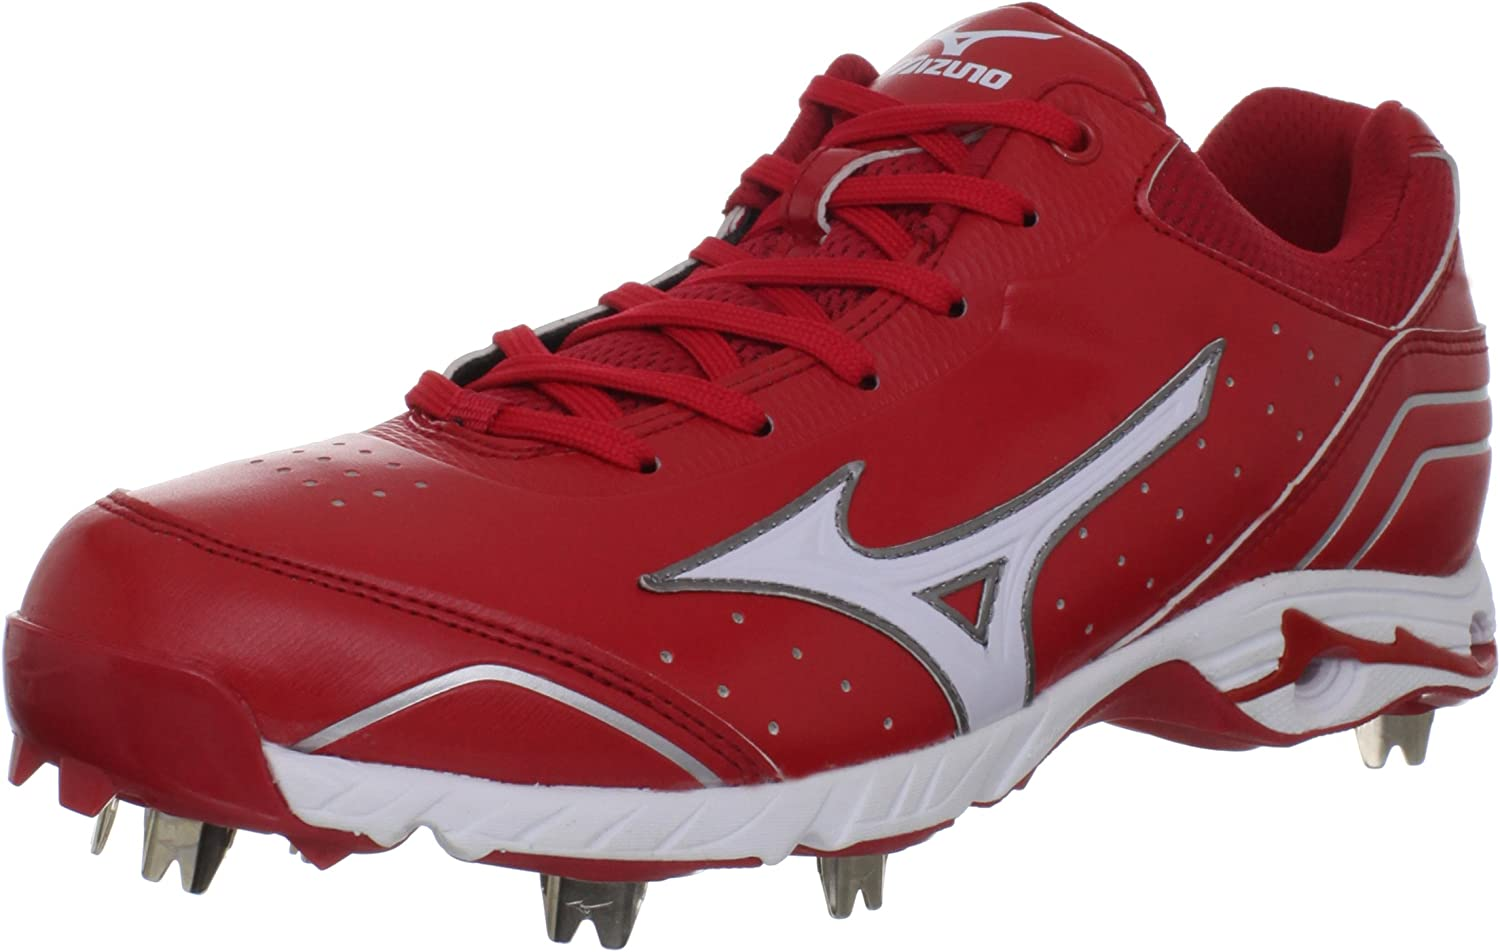 Mizuno Men's Outlet sale feature 9-Spike Advanced Baseball We OFFer at cheap prices 7 Cleat Classic